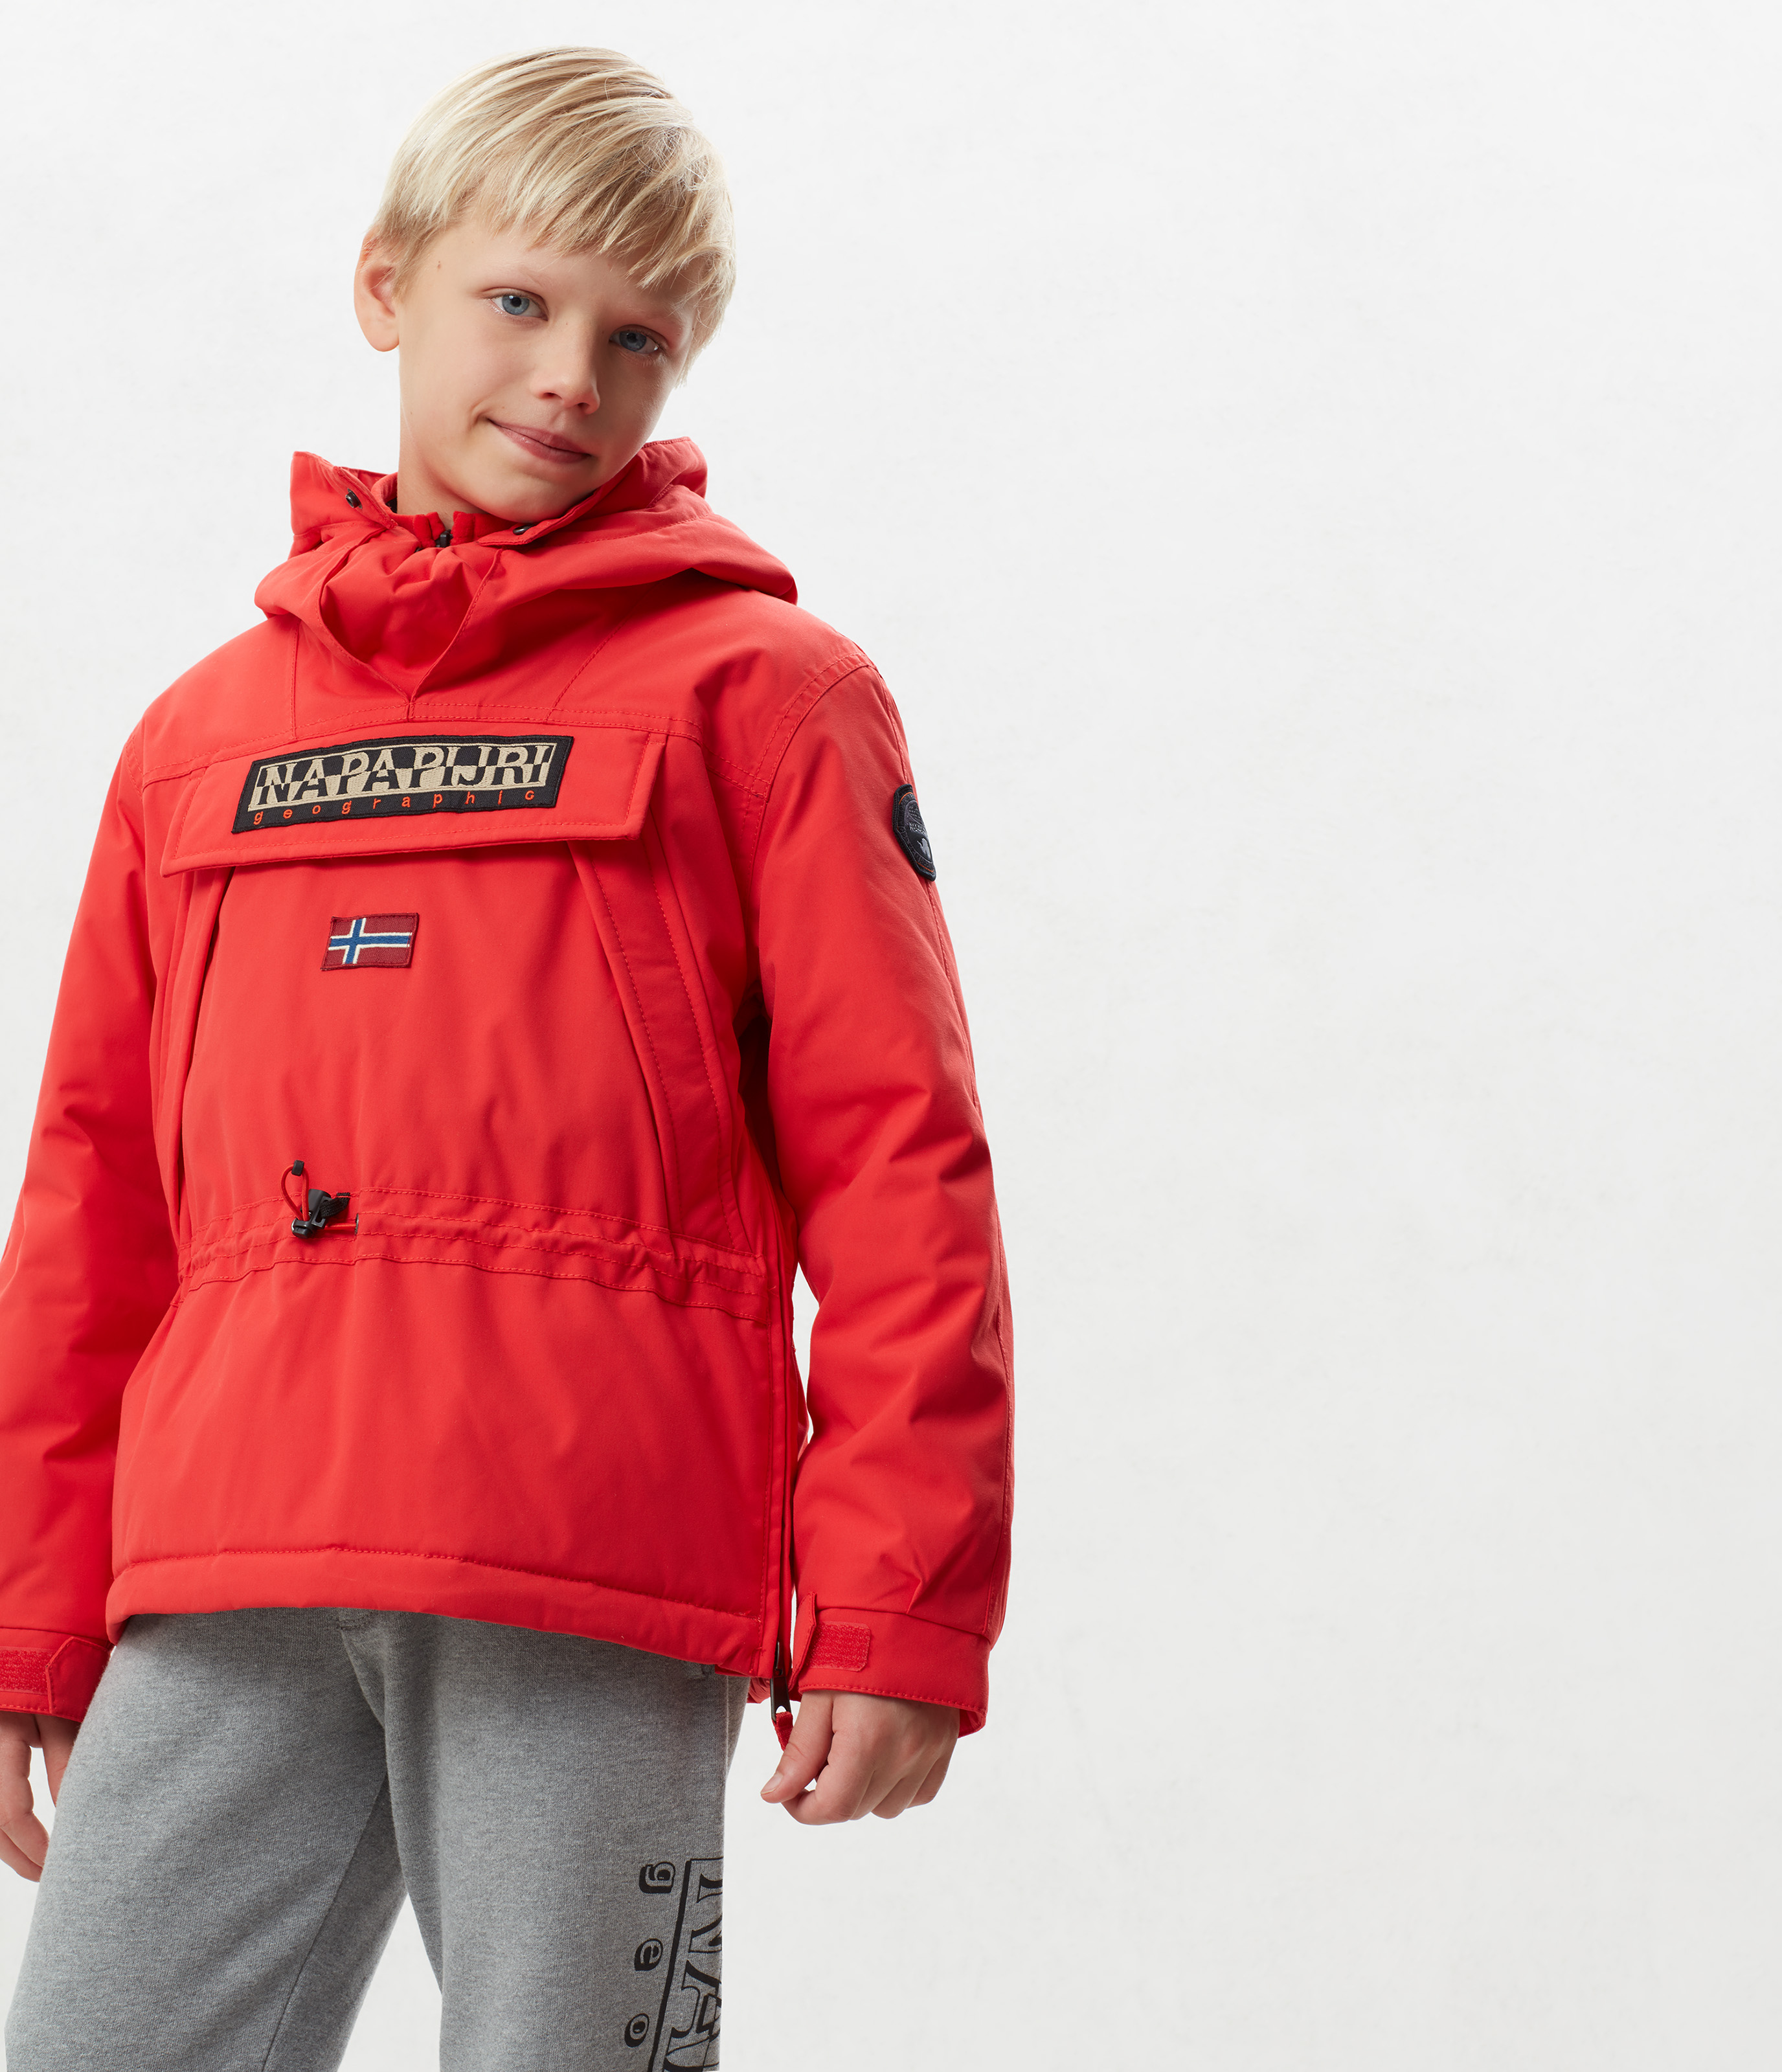 K SKIDOO 2 HIGH RISK RED